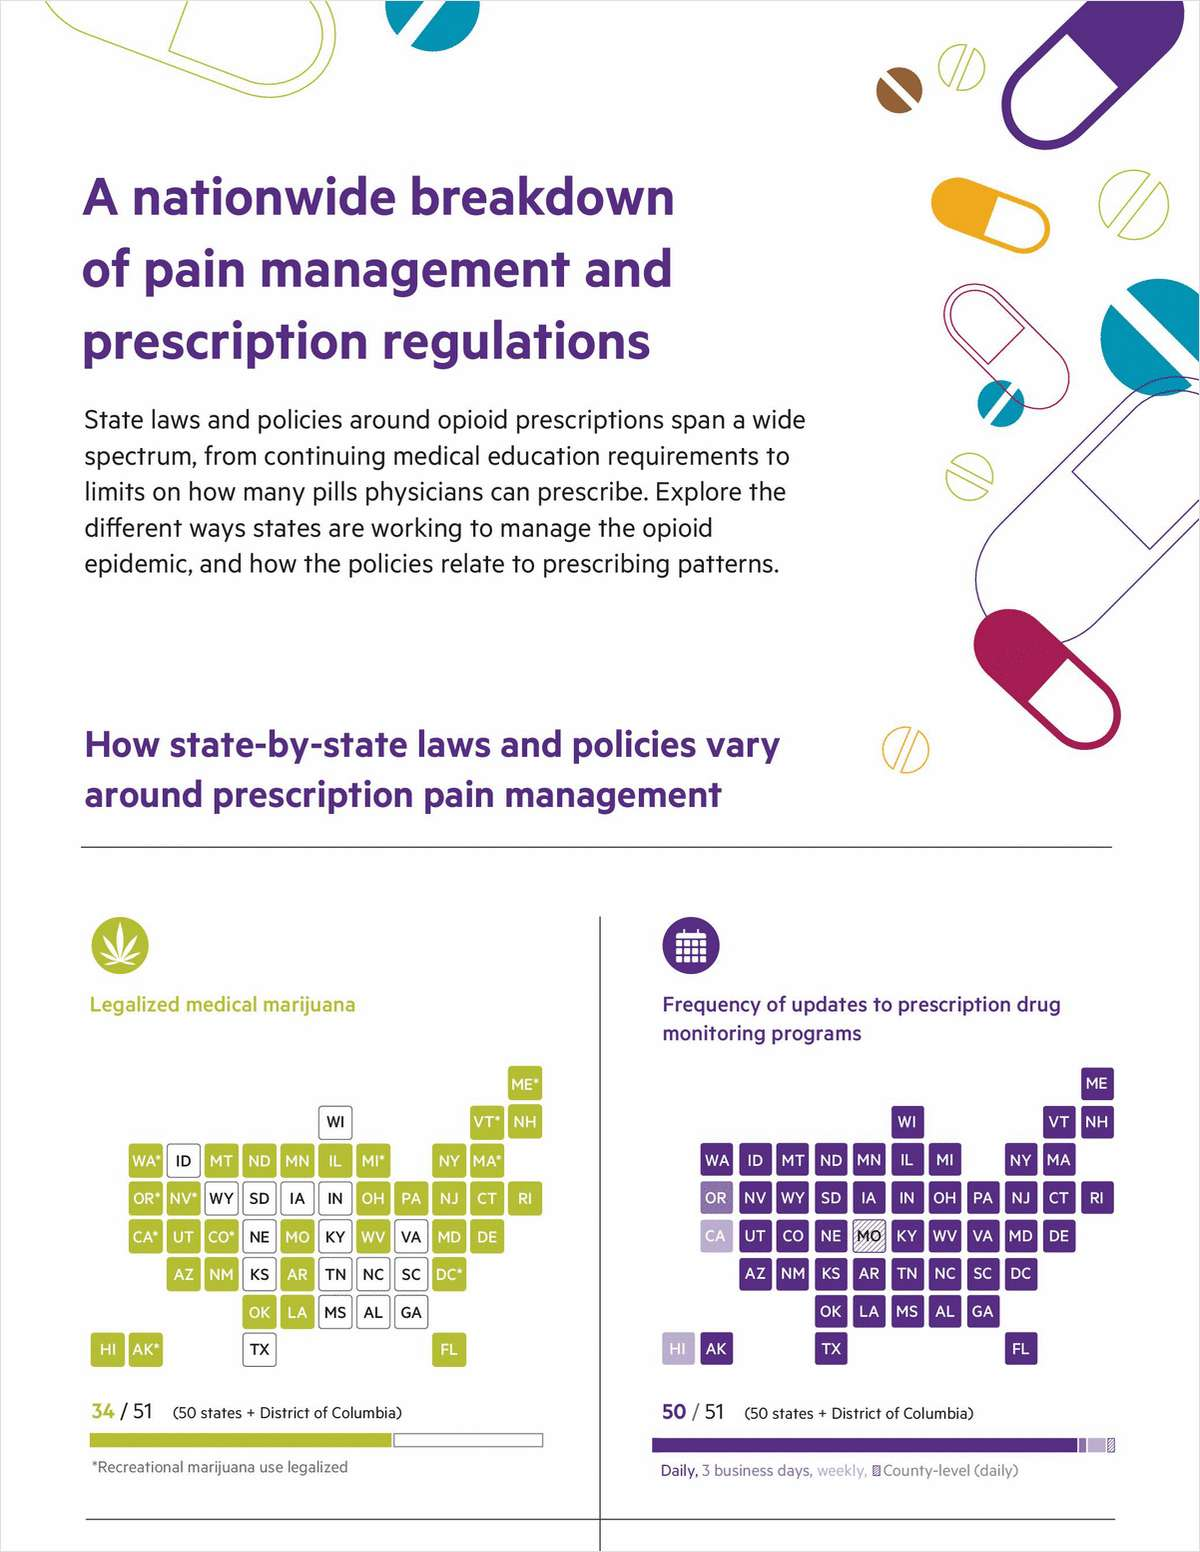 Opioid regulations: how does your state measure up?